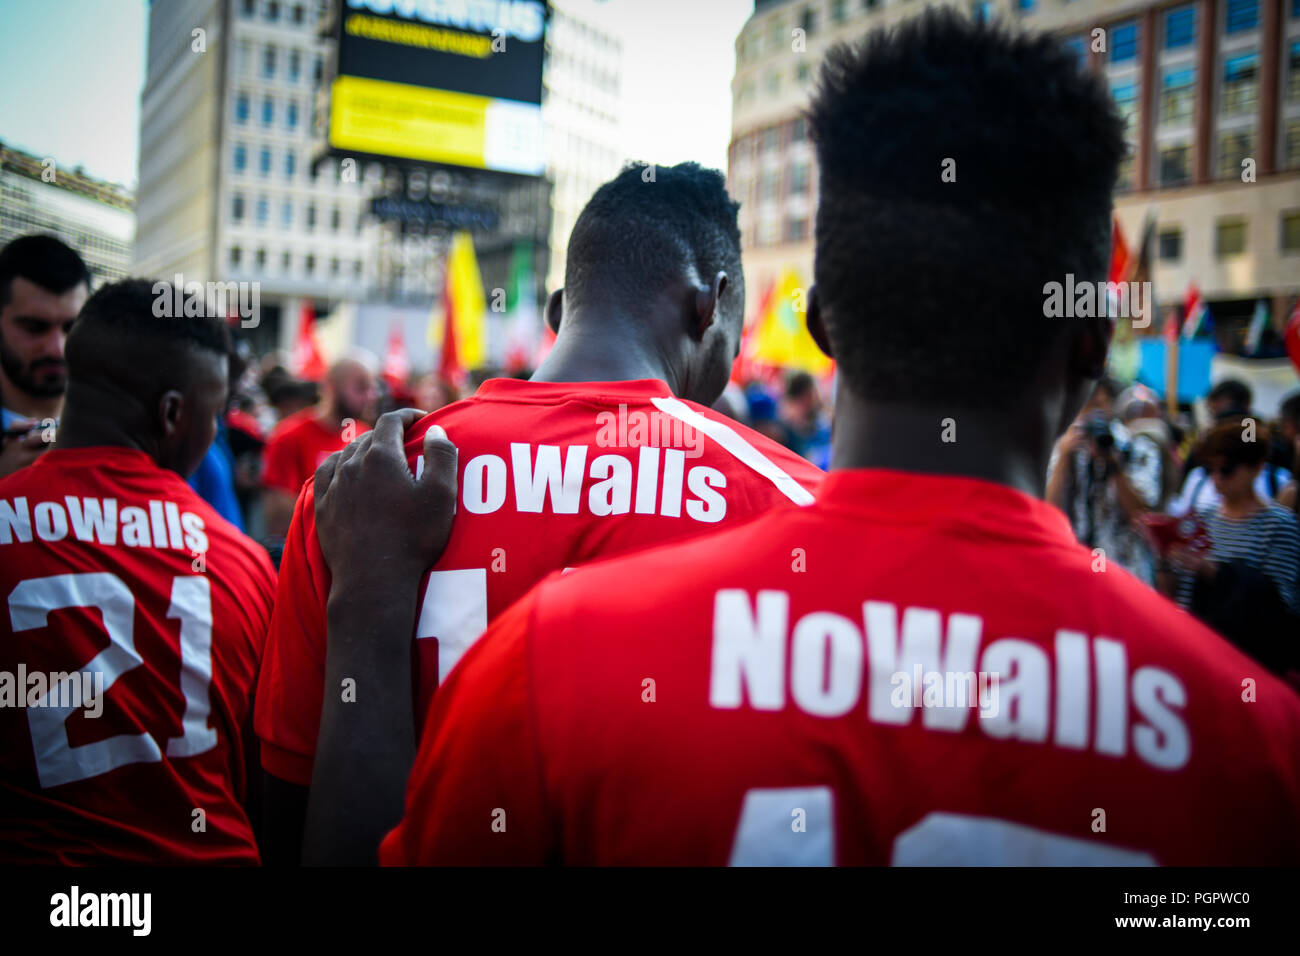 Milan, Italy. 28th Aug 2018. Migrants wearing tshirts reading 'No walls' play football during a protest against the meeting between Prime Minister of Hungary, Viktor Orbán and Italian Interior Minister Matteo Salvini in Milan, Italy on August 28, 2018 Credit: Piero Cruciatti/Alamy Live News - Stock Image